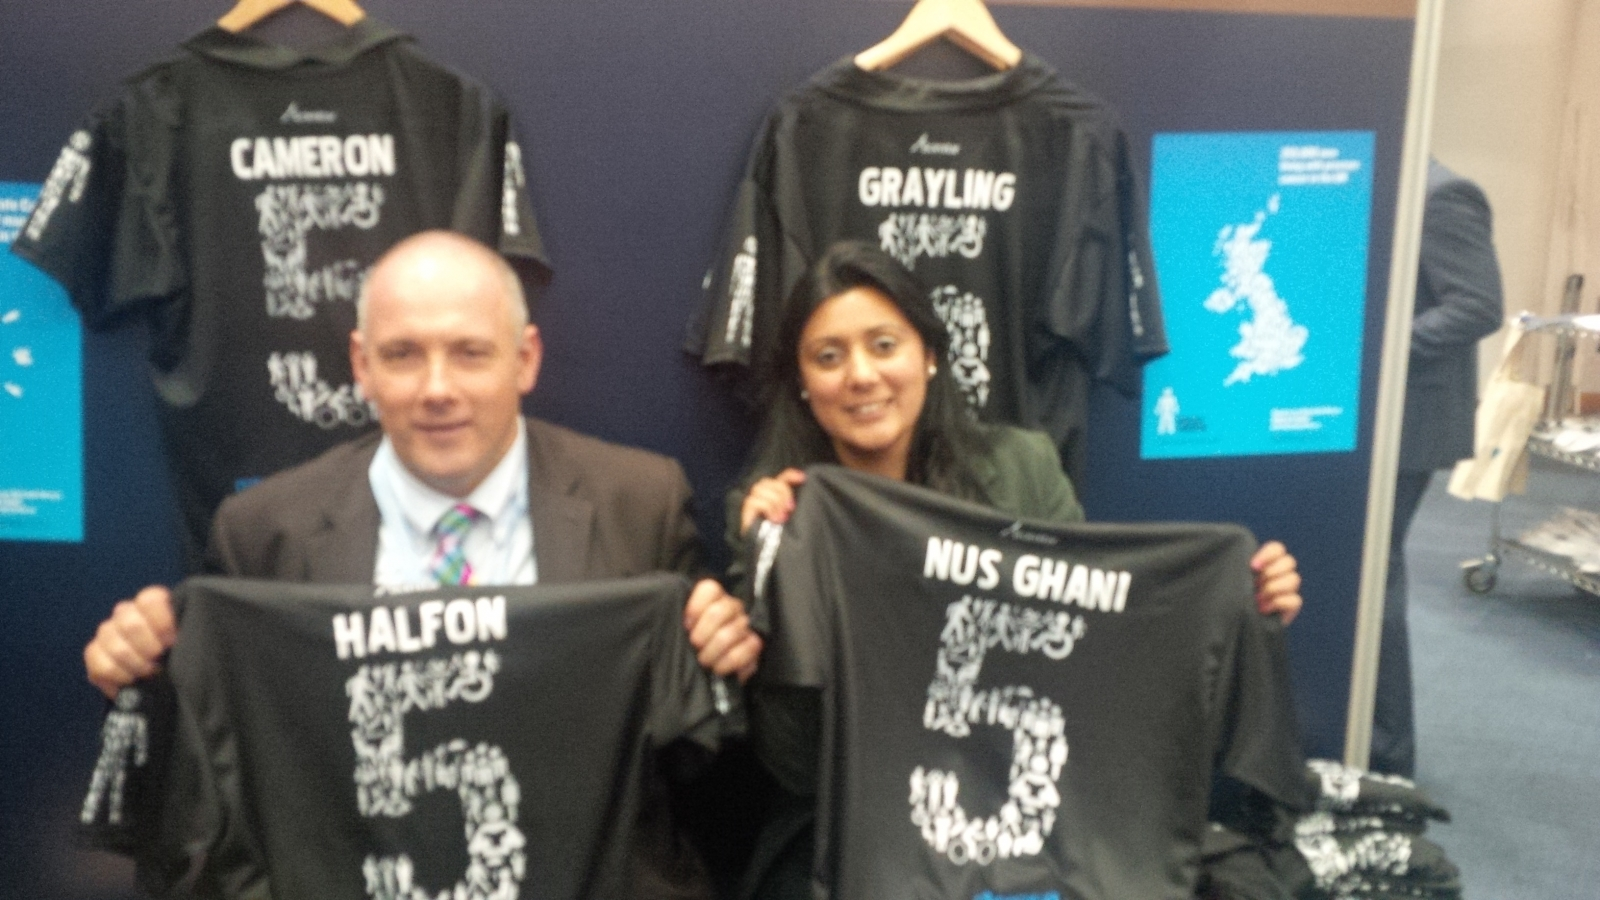 Nus Ghani and Rob Halfon MP